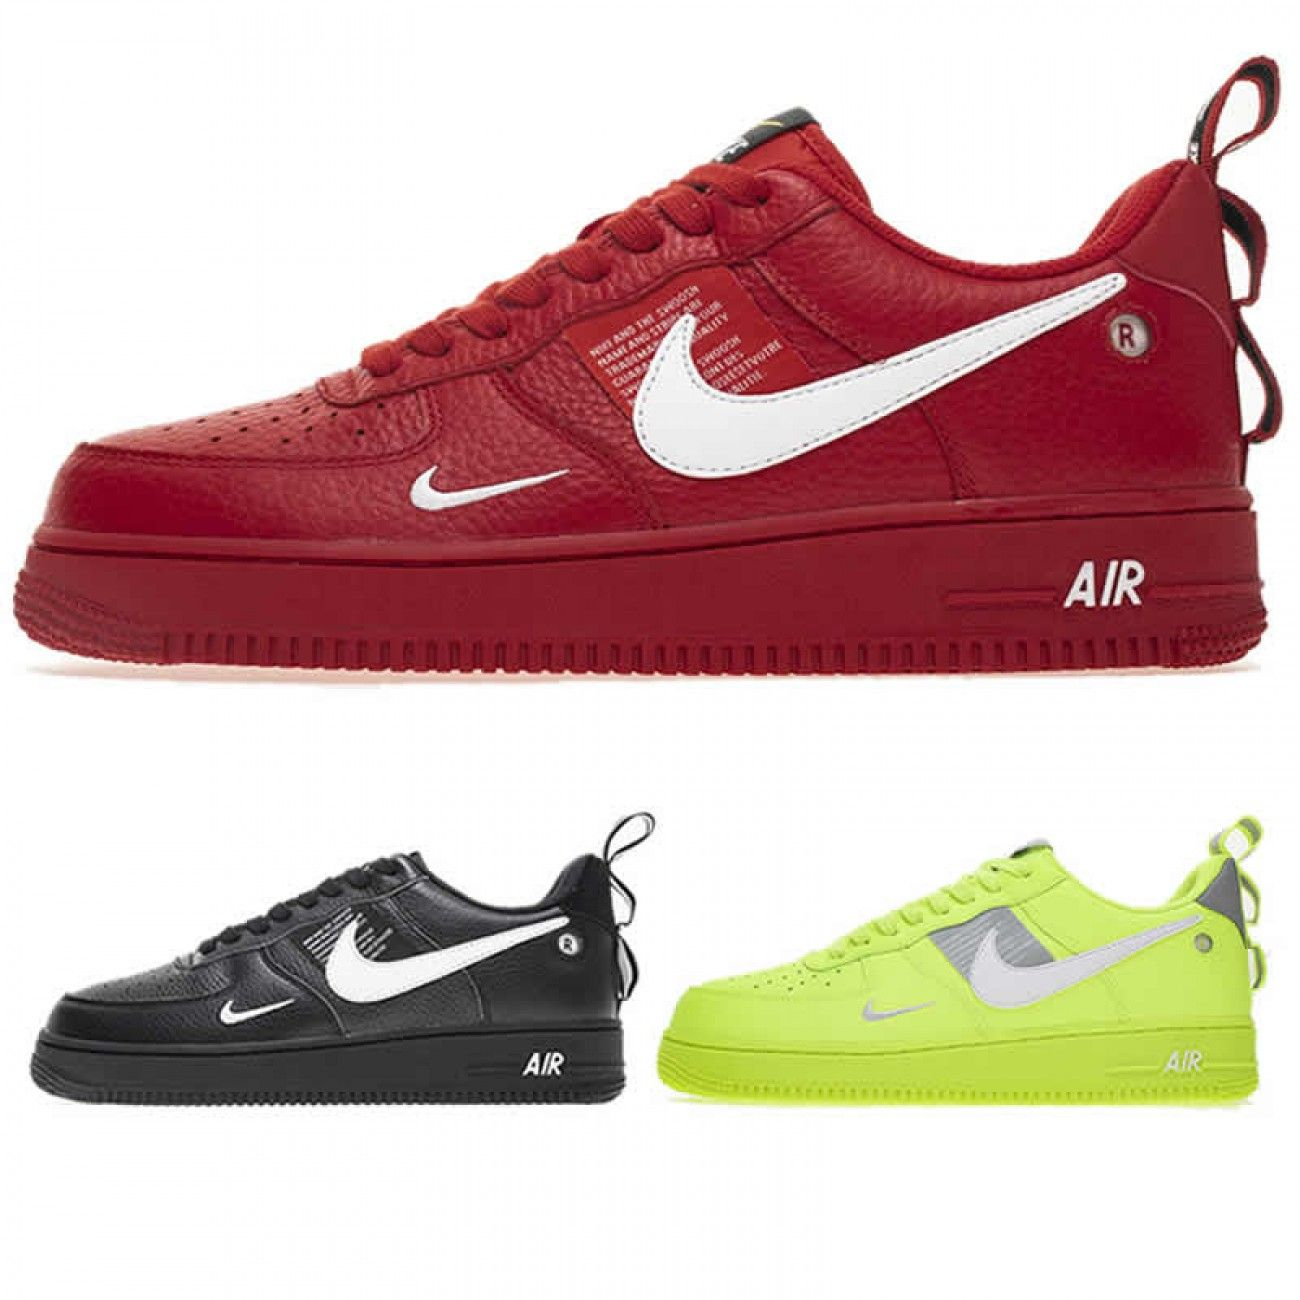 huge discount af85e 8bbe4 Nike Air Force 1 07 LV8 Utility